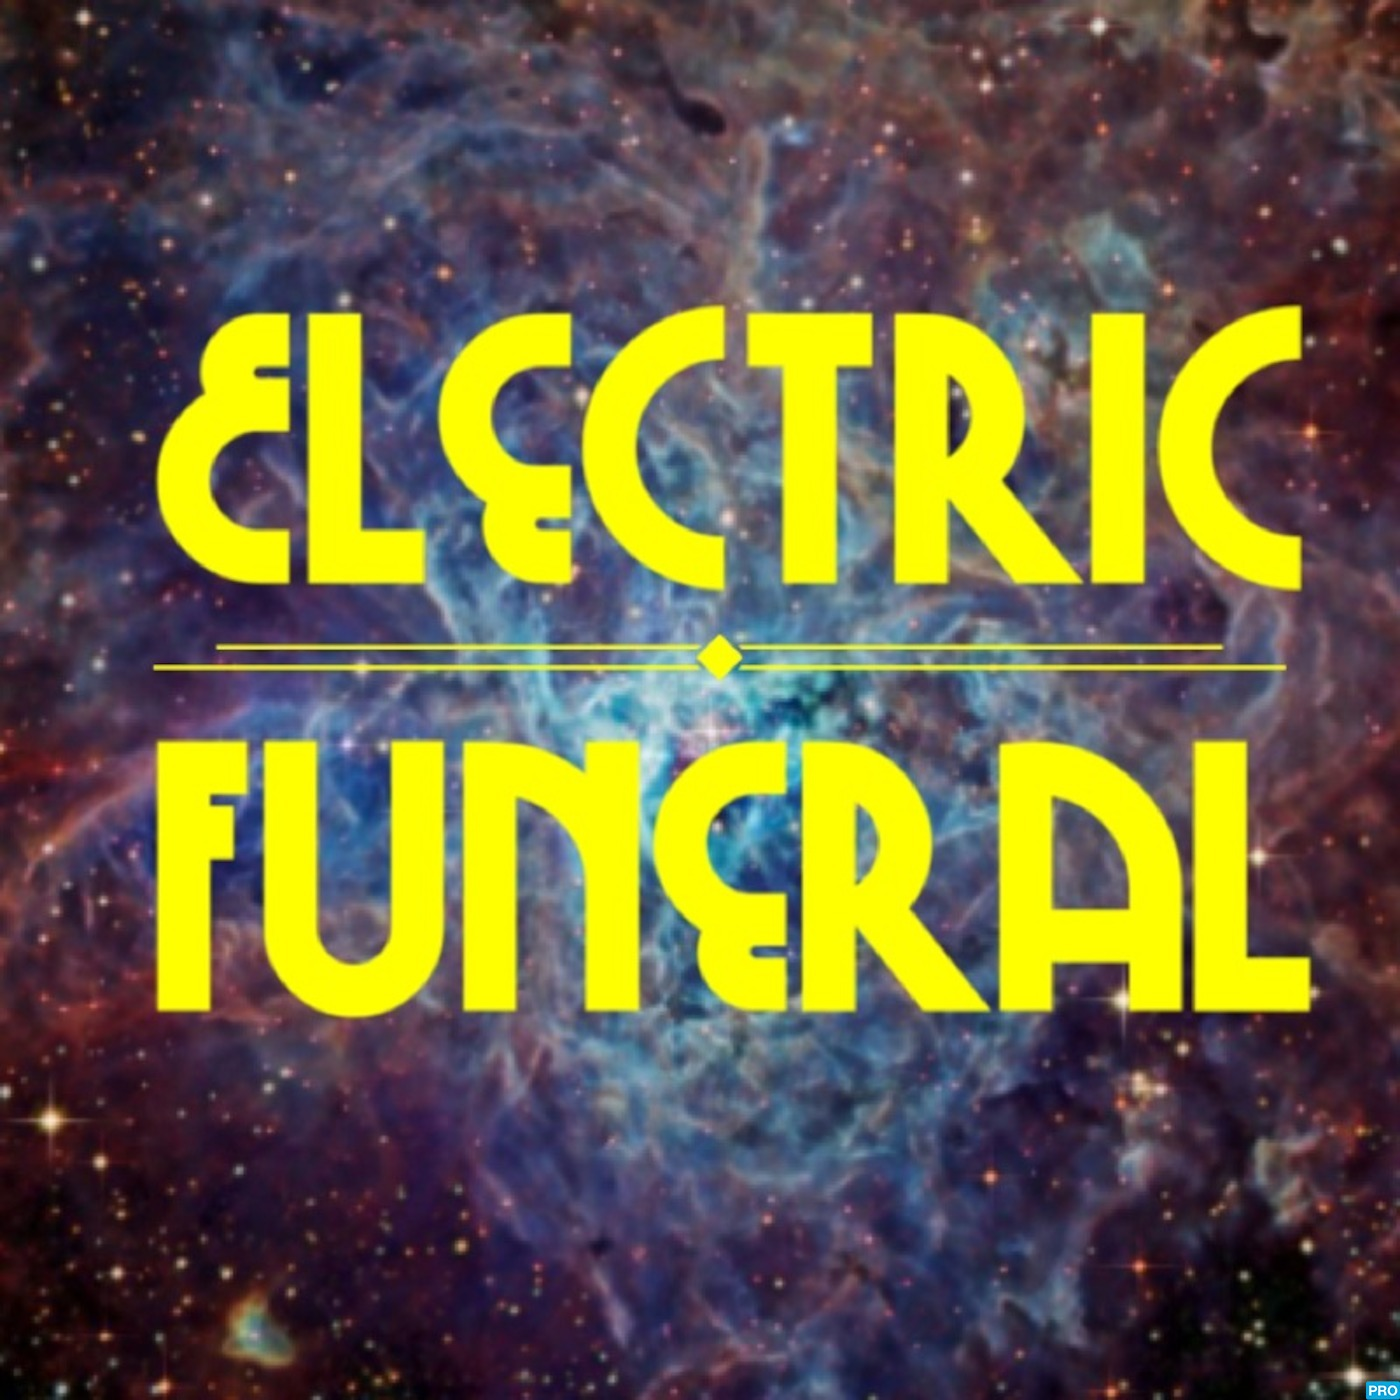 Electric Funeral